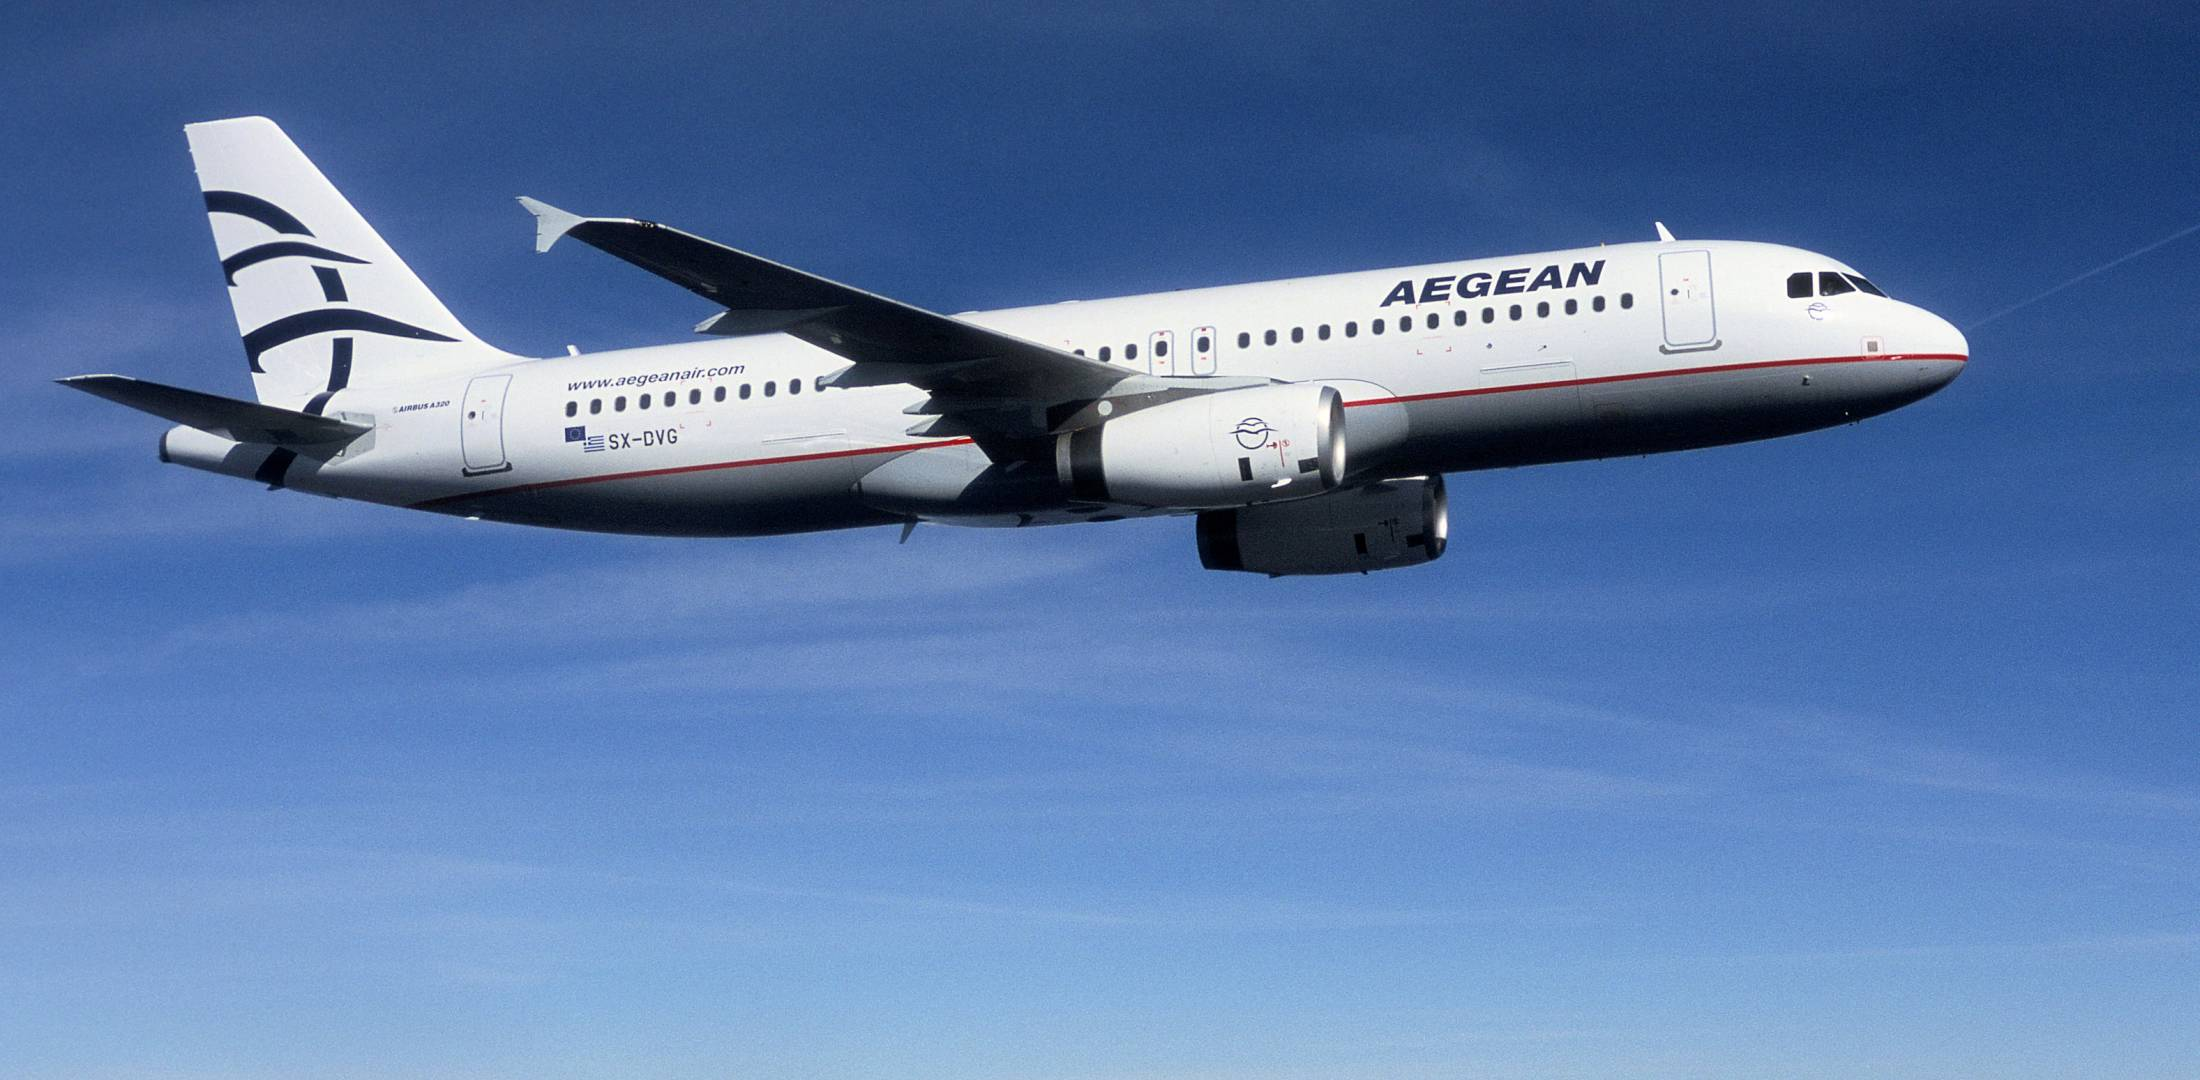 European carriers like Aegean Airlines face a profits squeeze in 2012